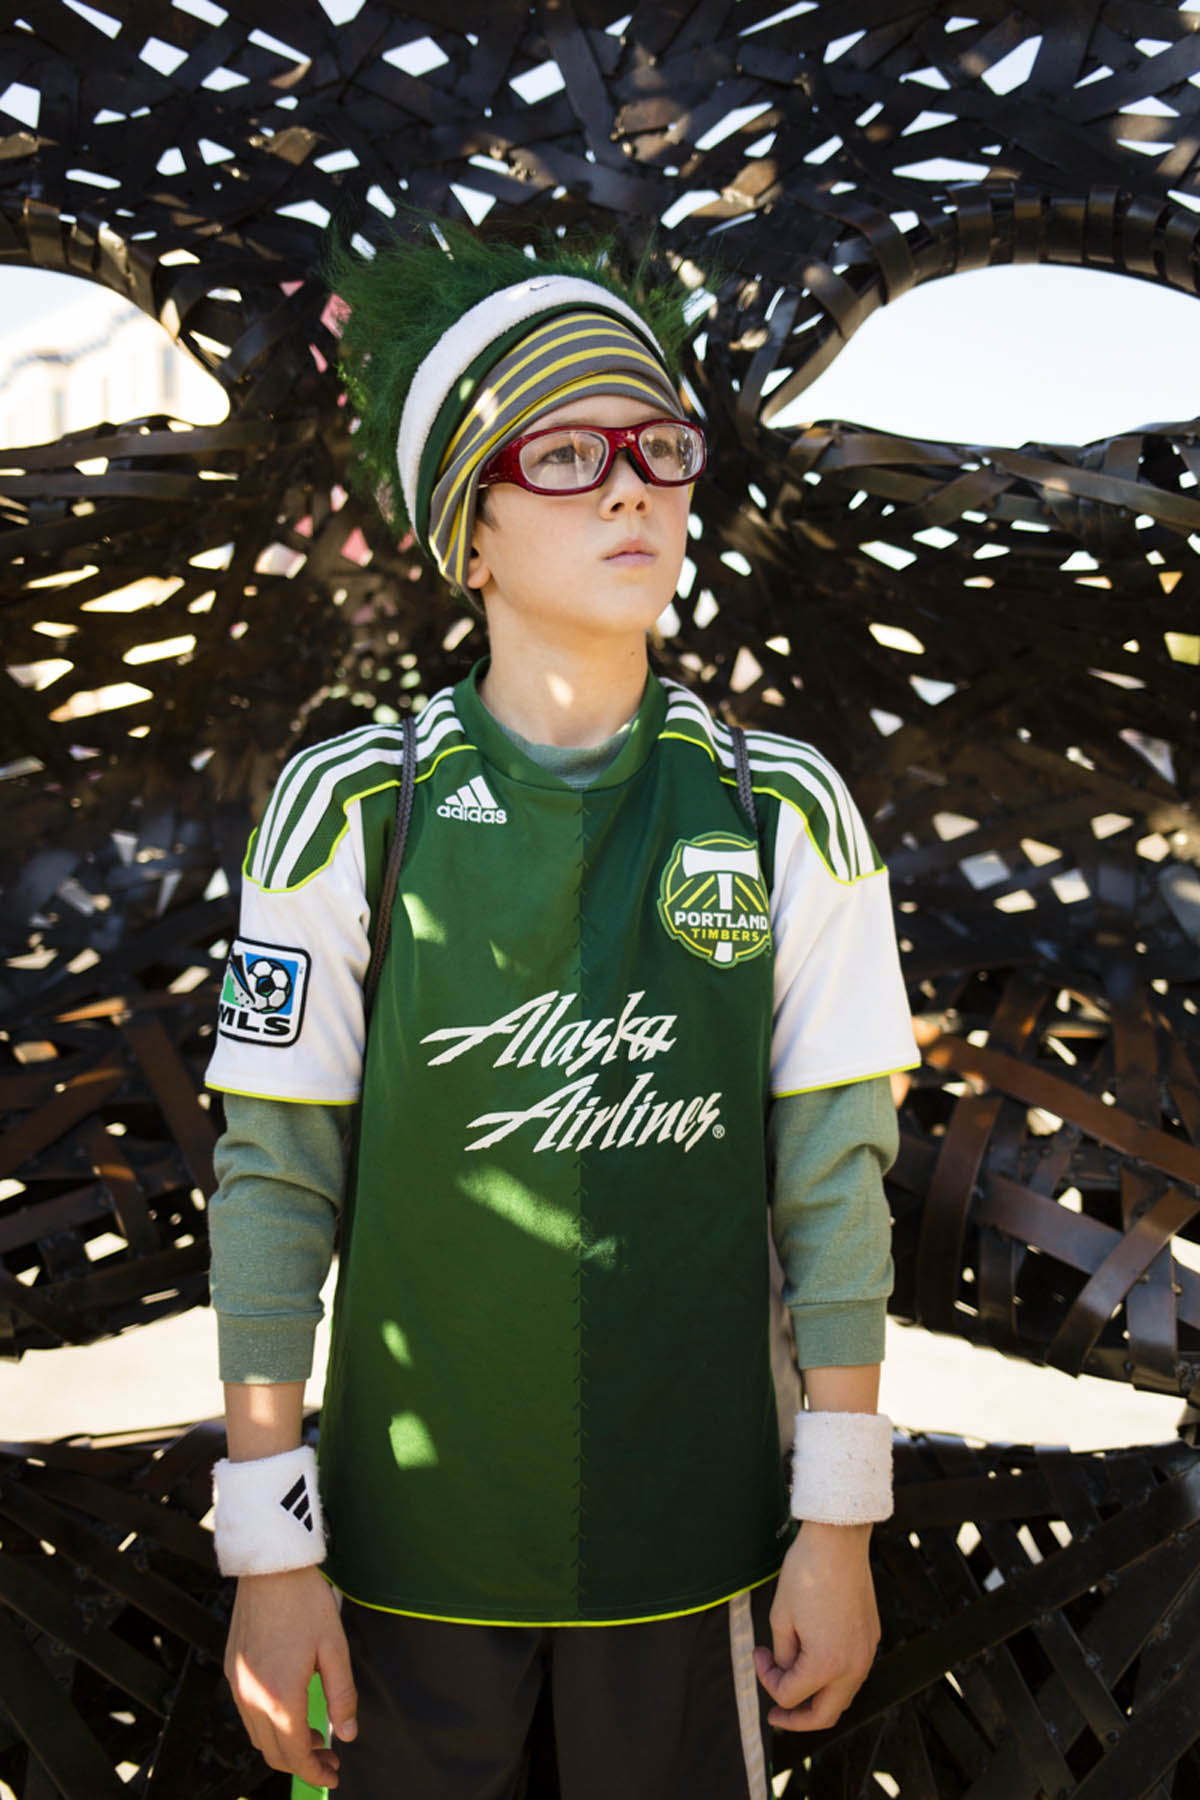 PORTLAND, OR – October 13, 2013:  Portland Timbers soccer fan Beck Waxman shows true colors (green) while posing for a portrait outside the Jen-Weld Field before a big game with rival to the North, the Seattle Sounders. The Timbers are one of the three hottest franchises in MLS right now, all part of a soccer explosion in the Pacific Northwest, including the Seattle Sounders and the Vancouver Whitecaps.